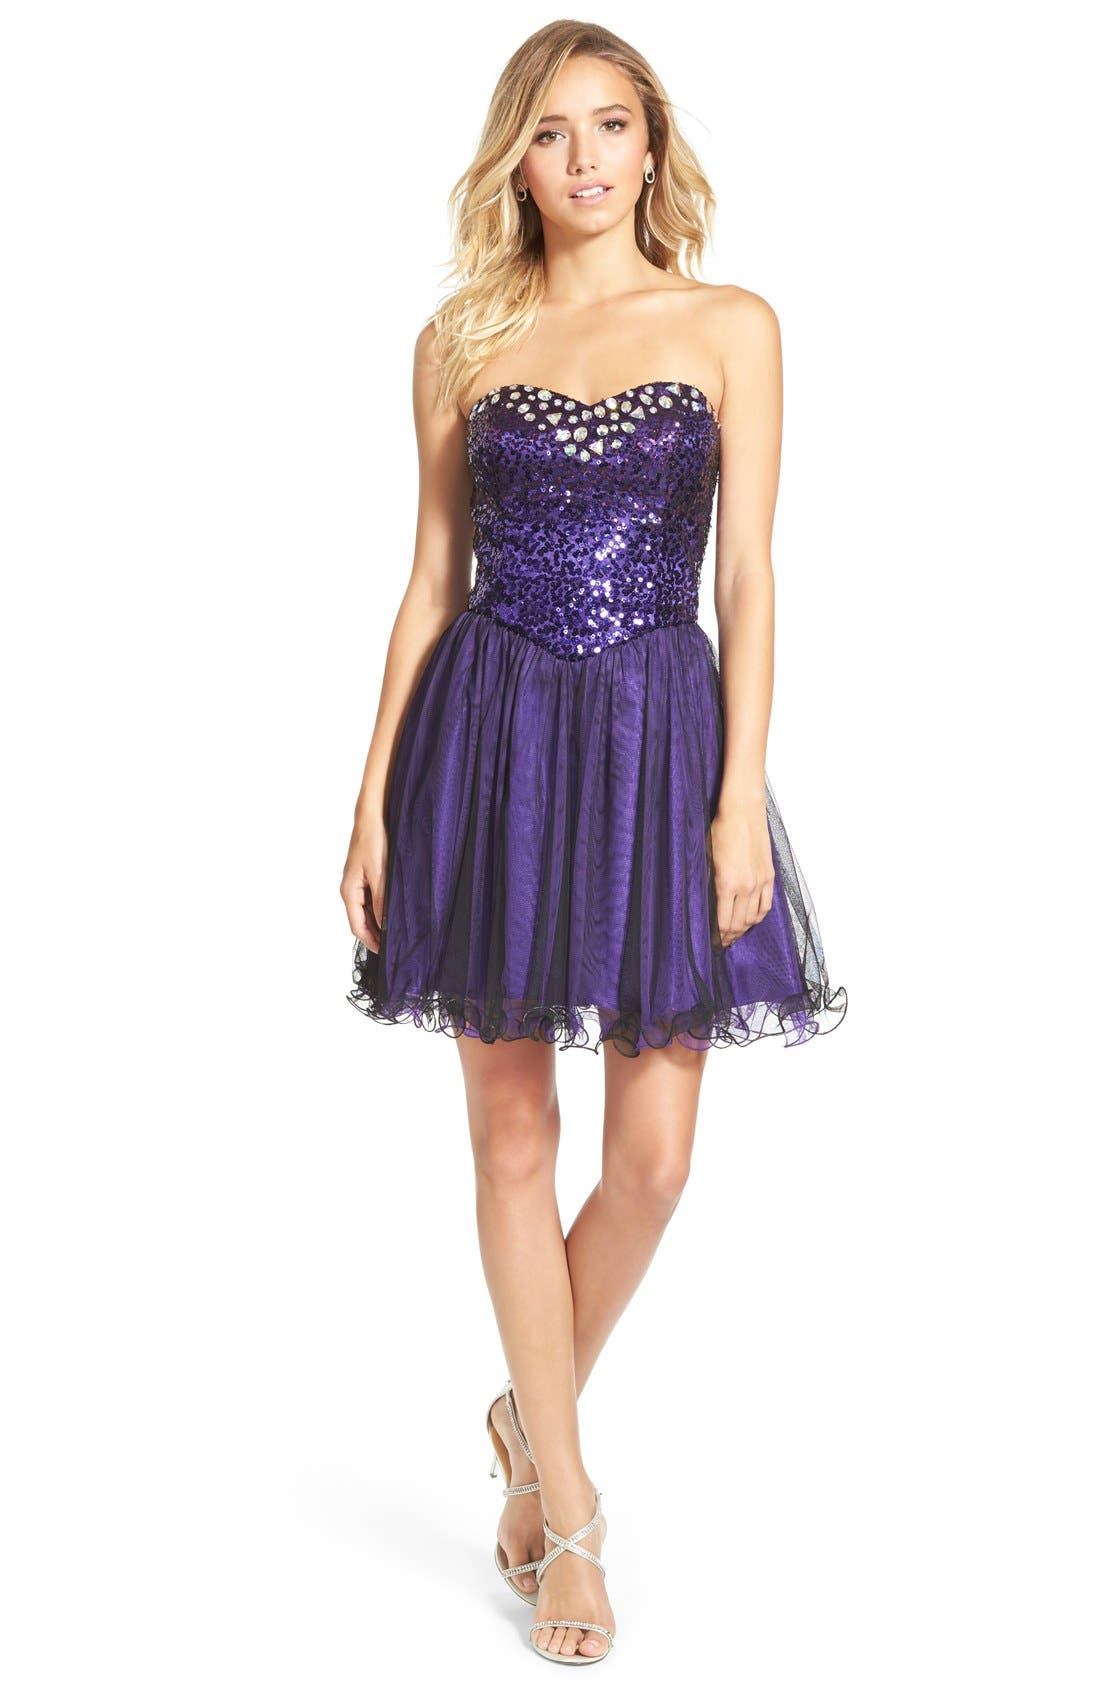 Main Image - Steppin Out Sequin Bodice Strapless Skater Dress